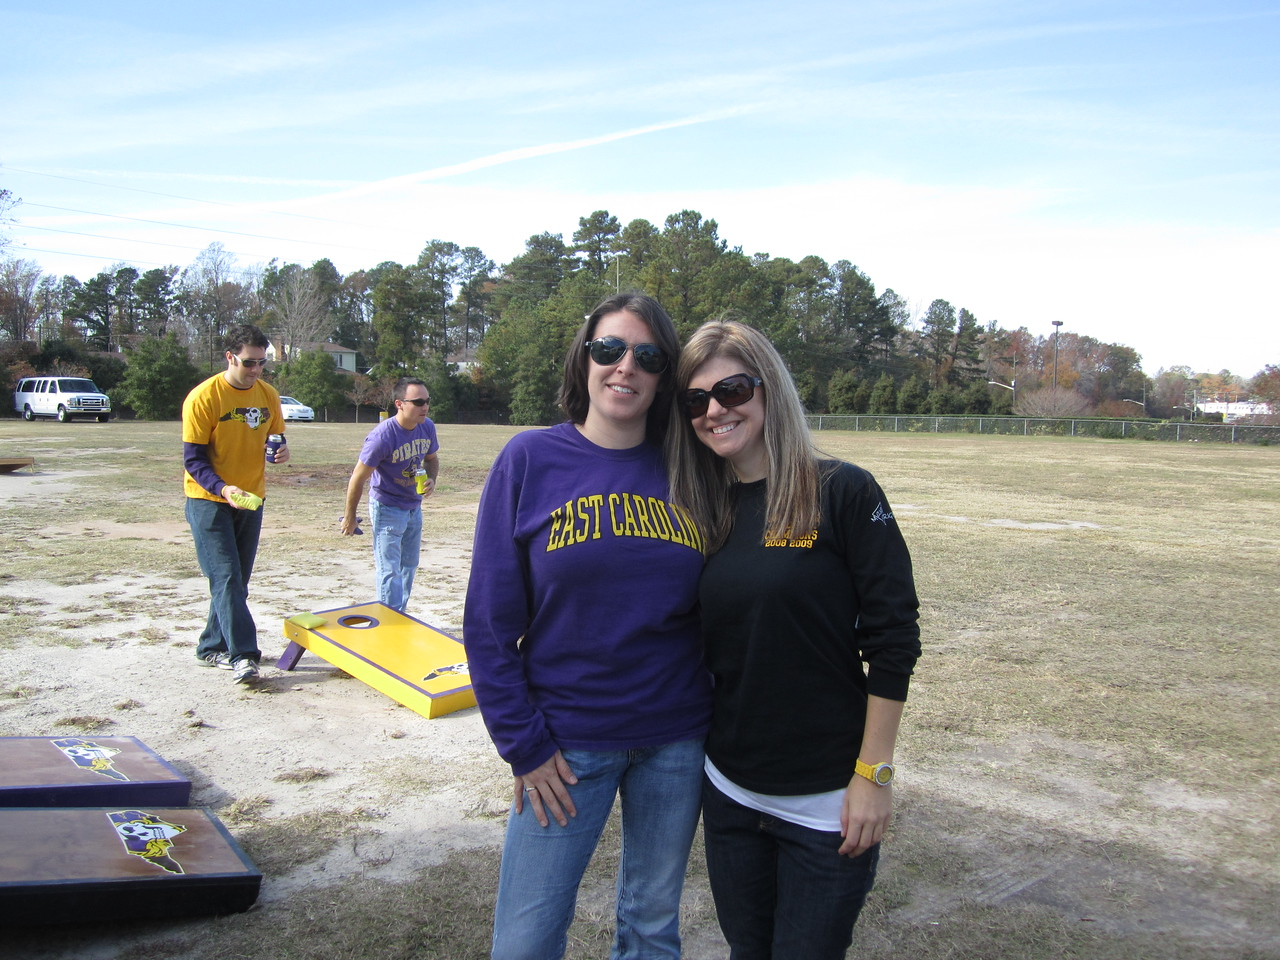 11/19/2011 ECU vs University of Central Florida - Emily, Jen